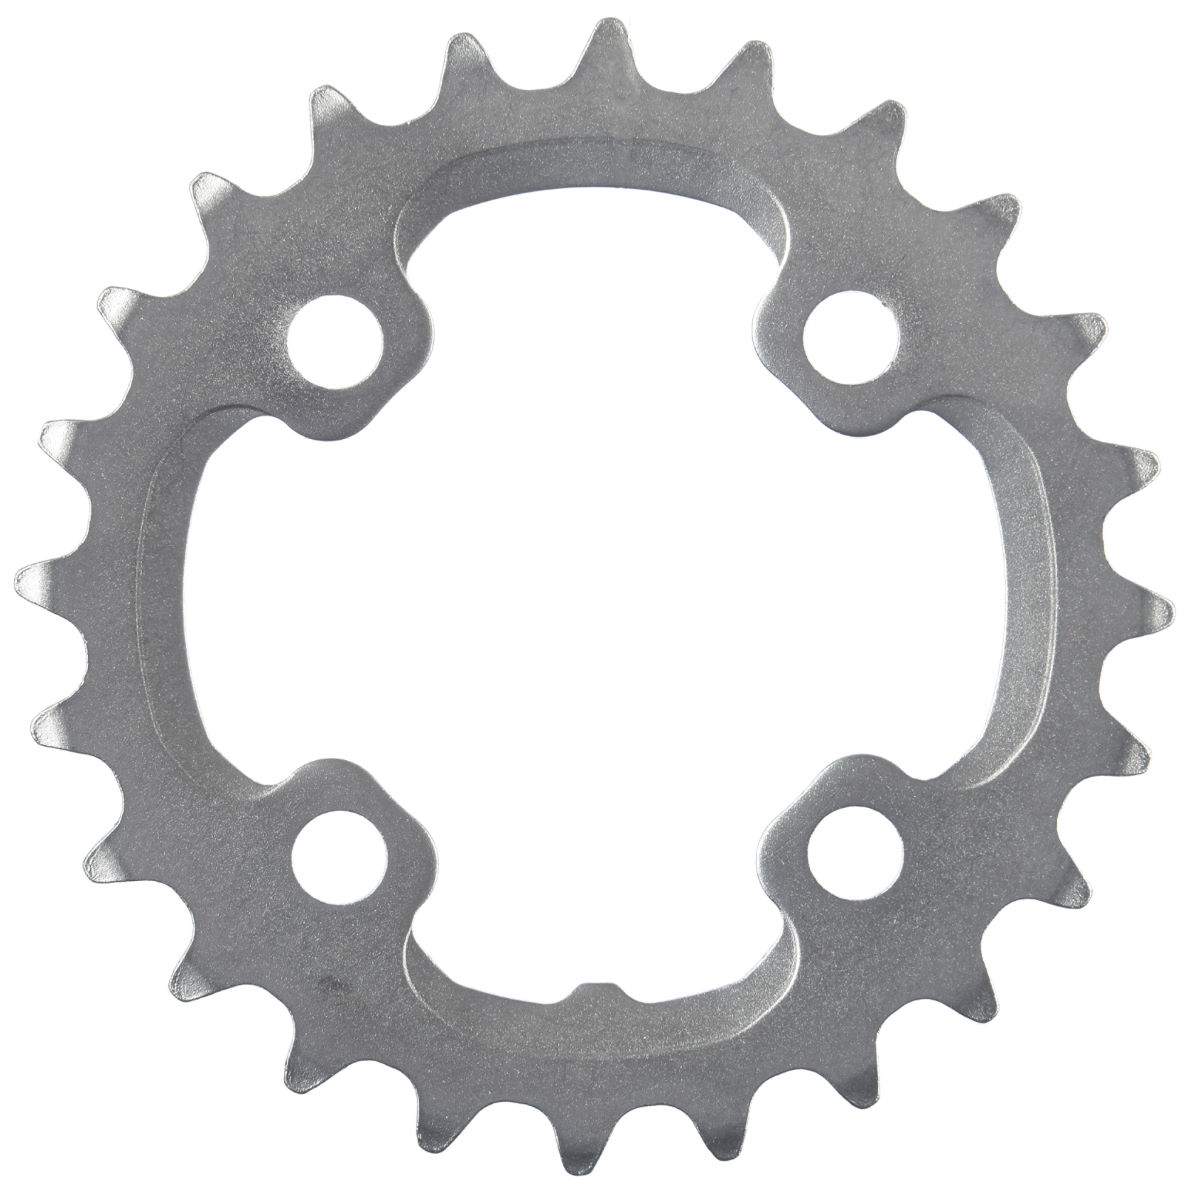 Shimano Xt Fcm785 10 Speed Double Chainring - Ak Type 26t 10 Speed